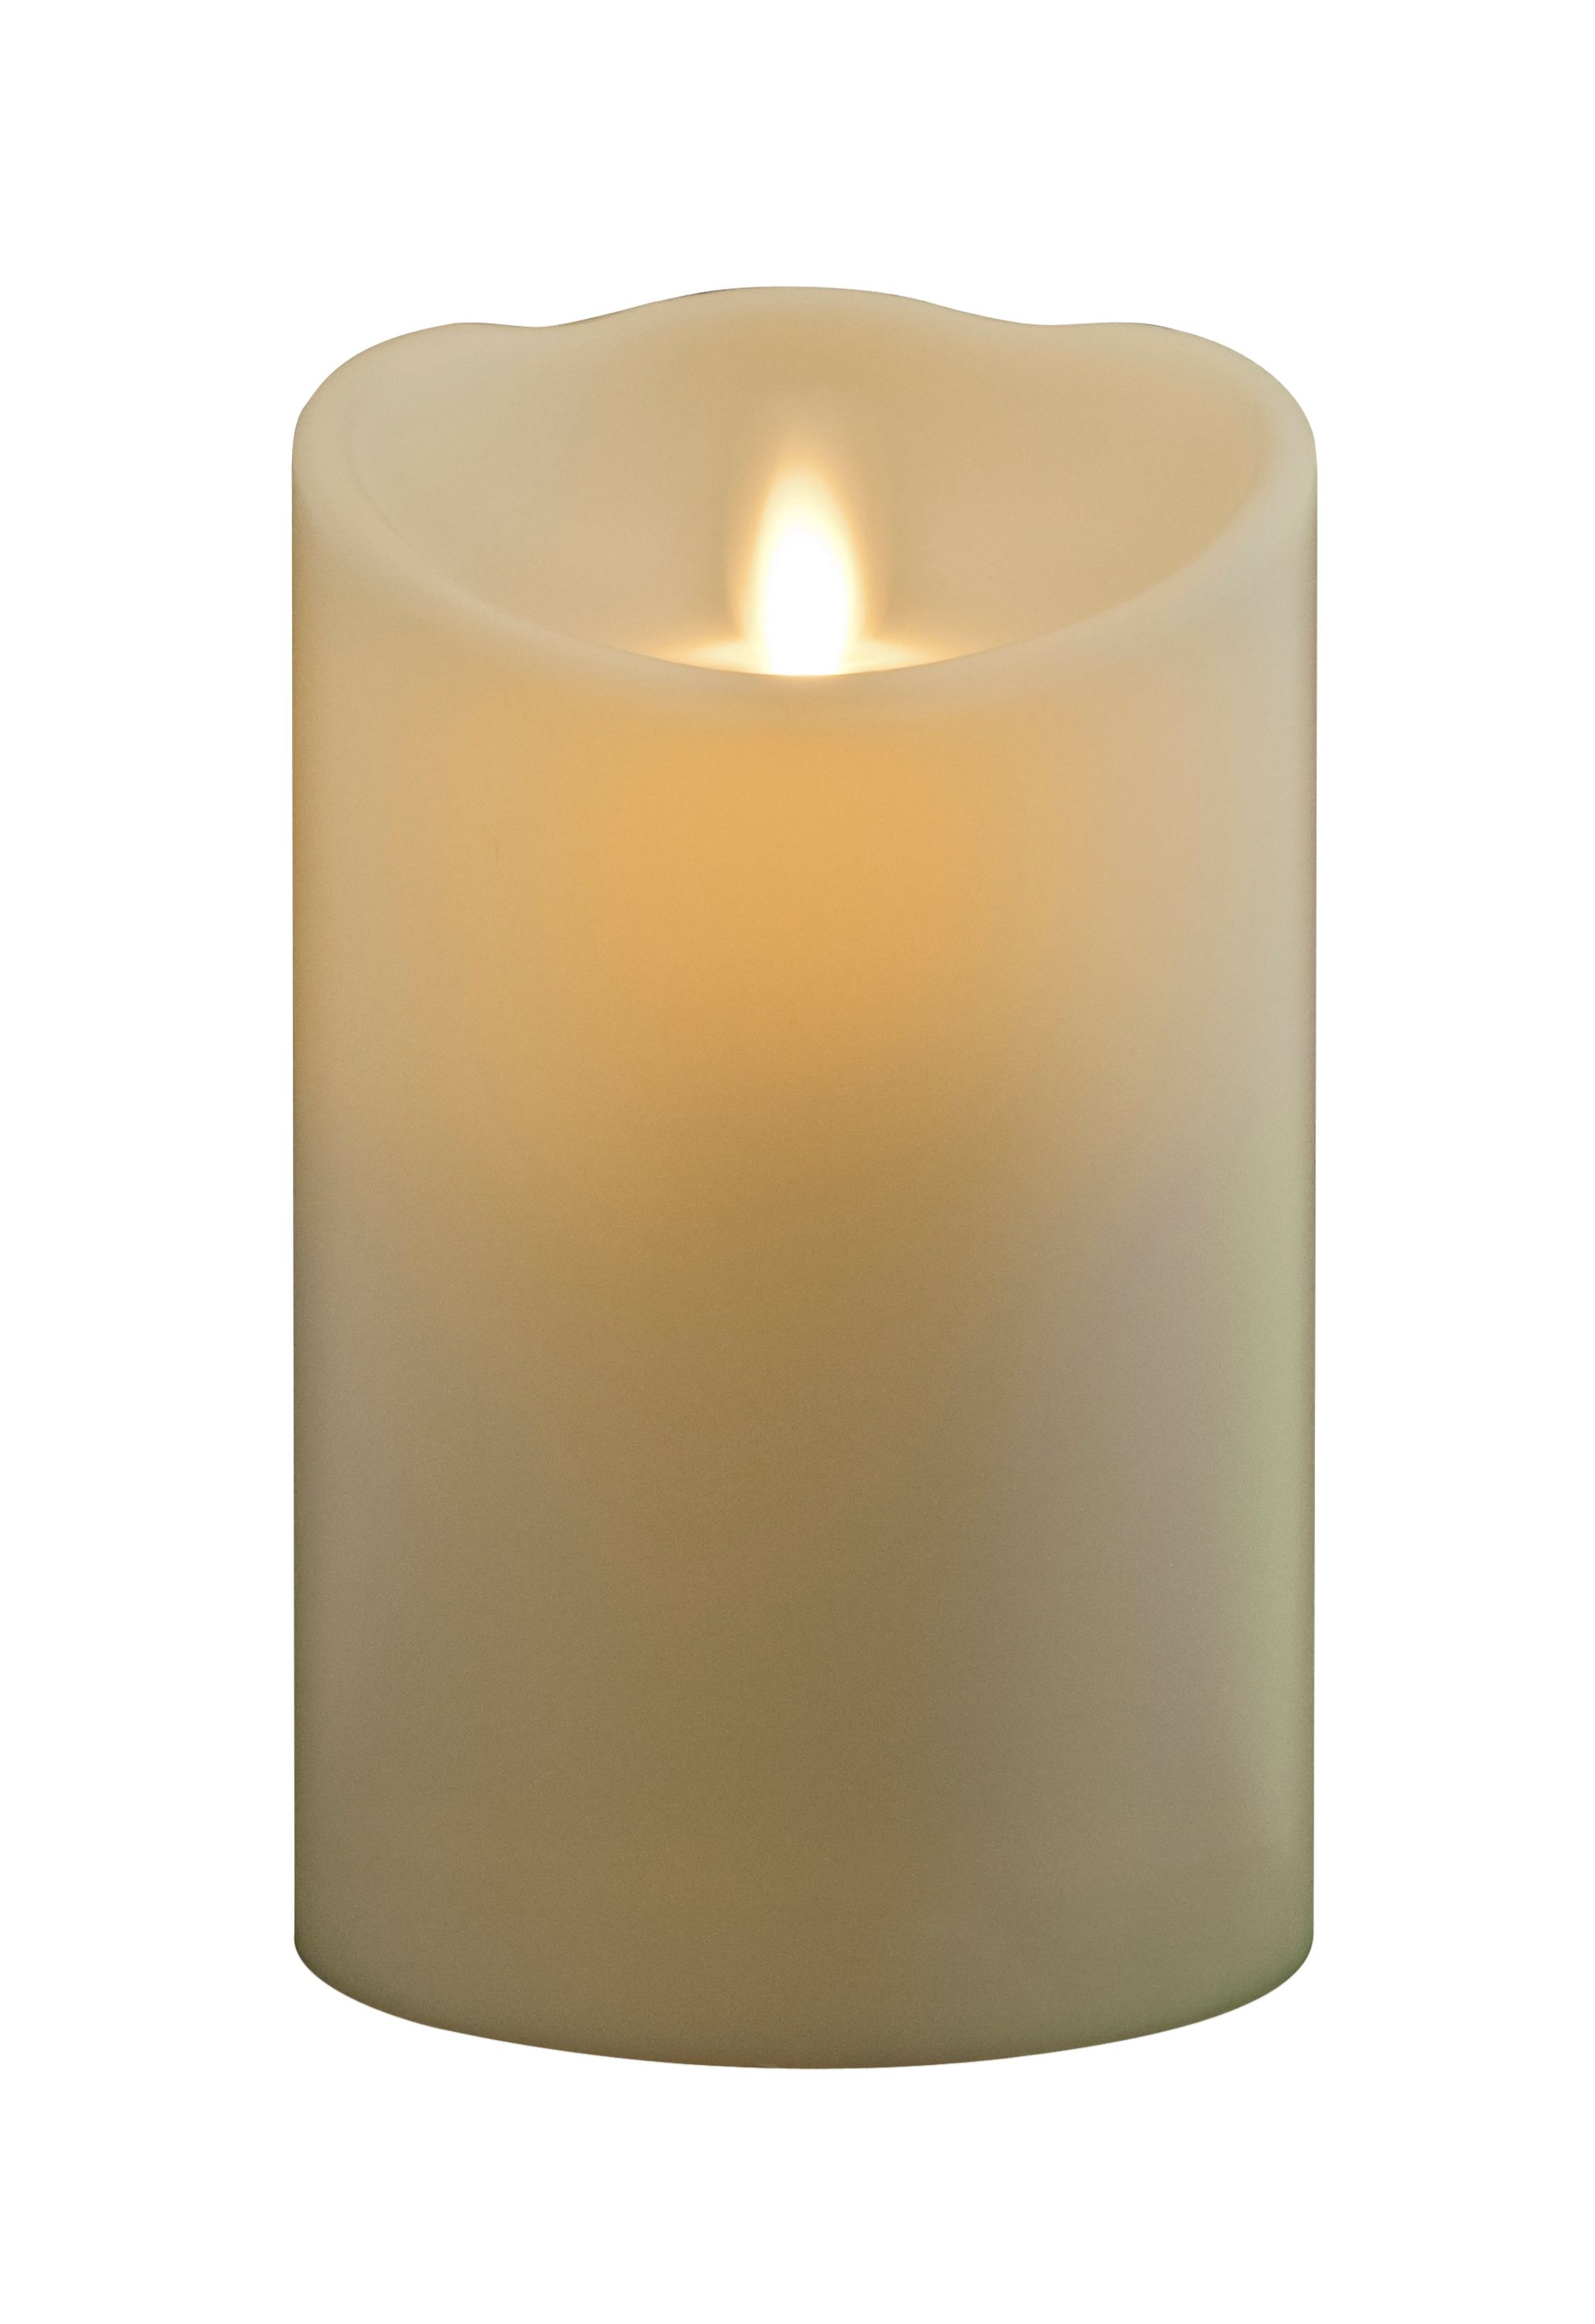 Image of Luminara Small Flameless Pillar Candle in Ivory